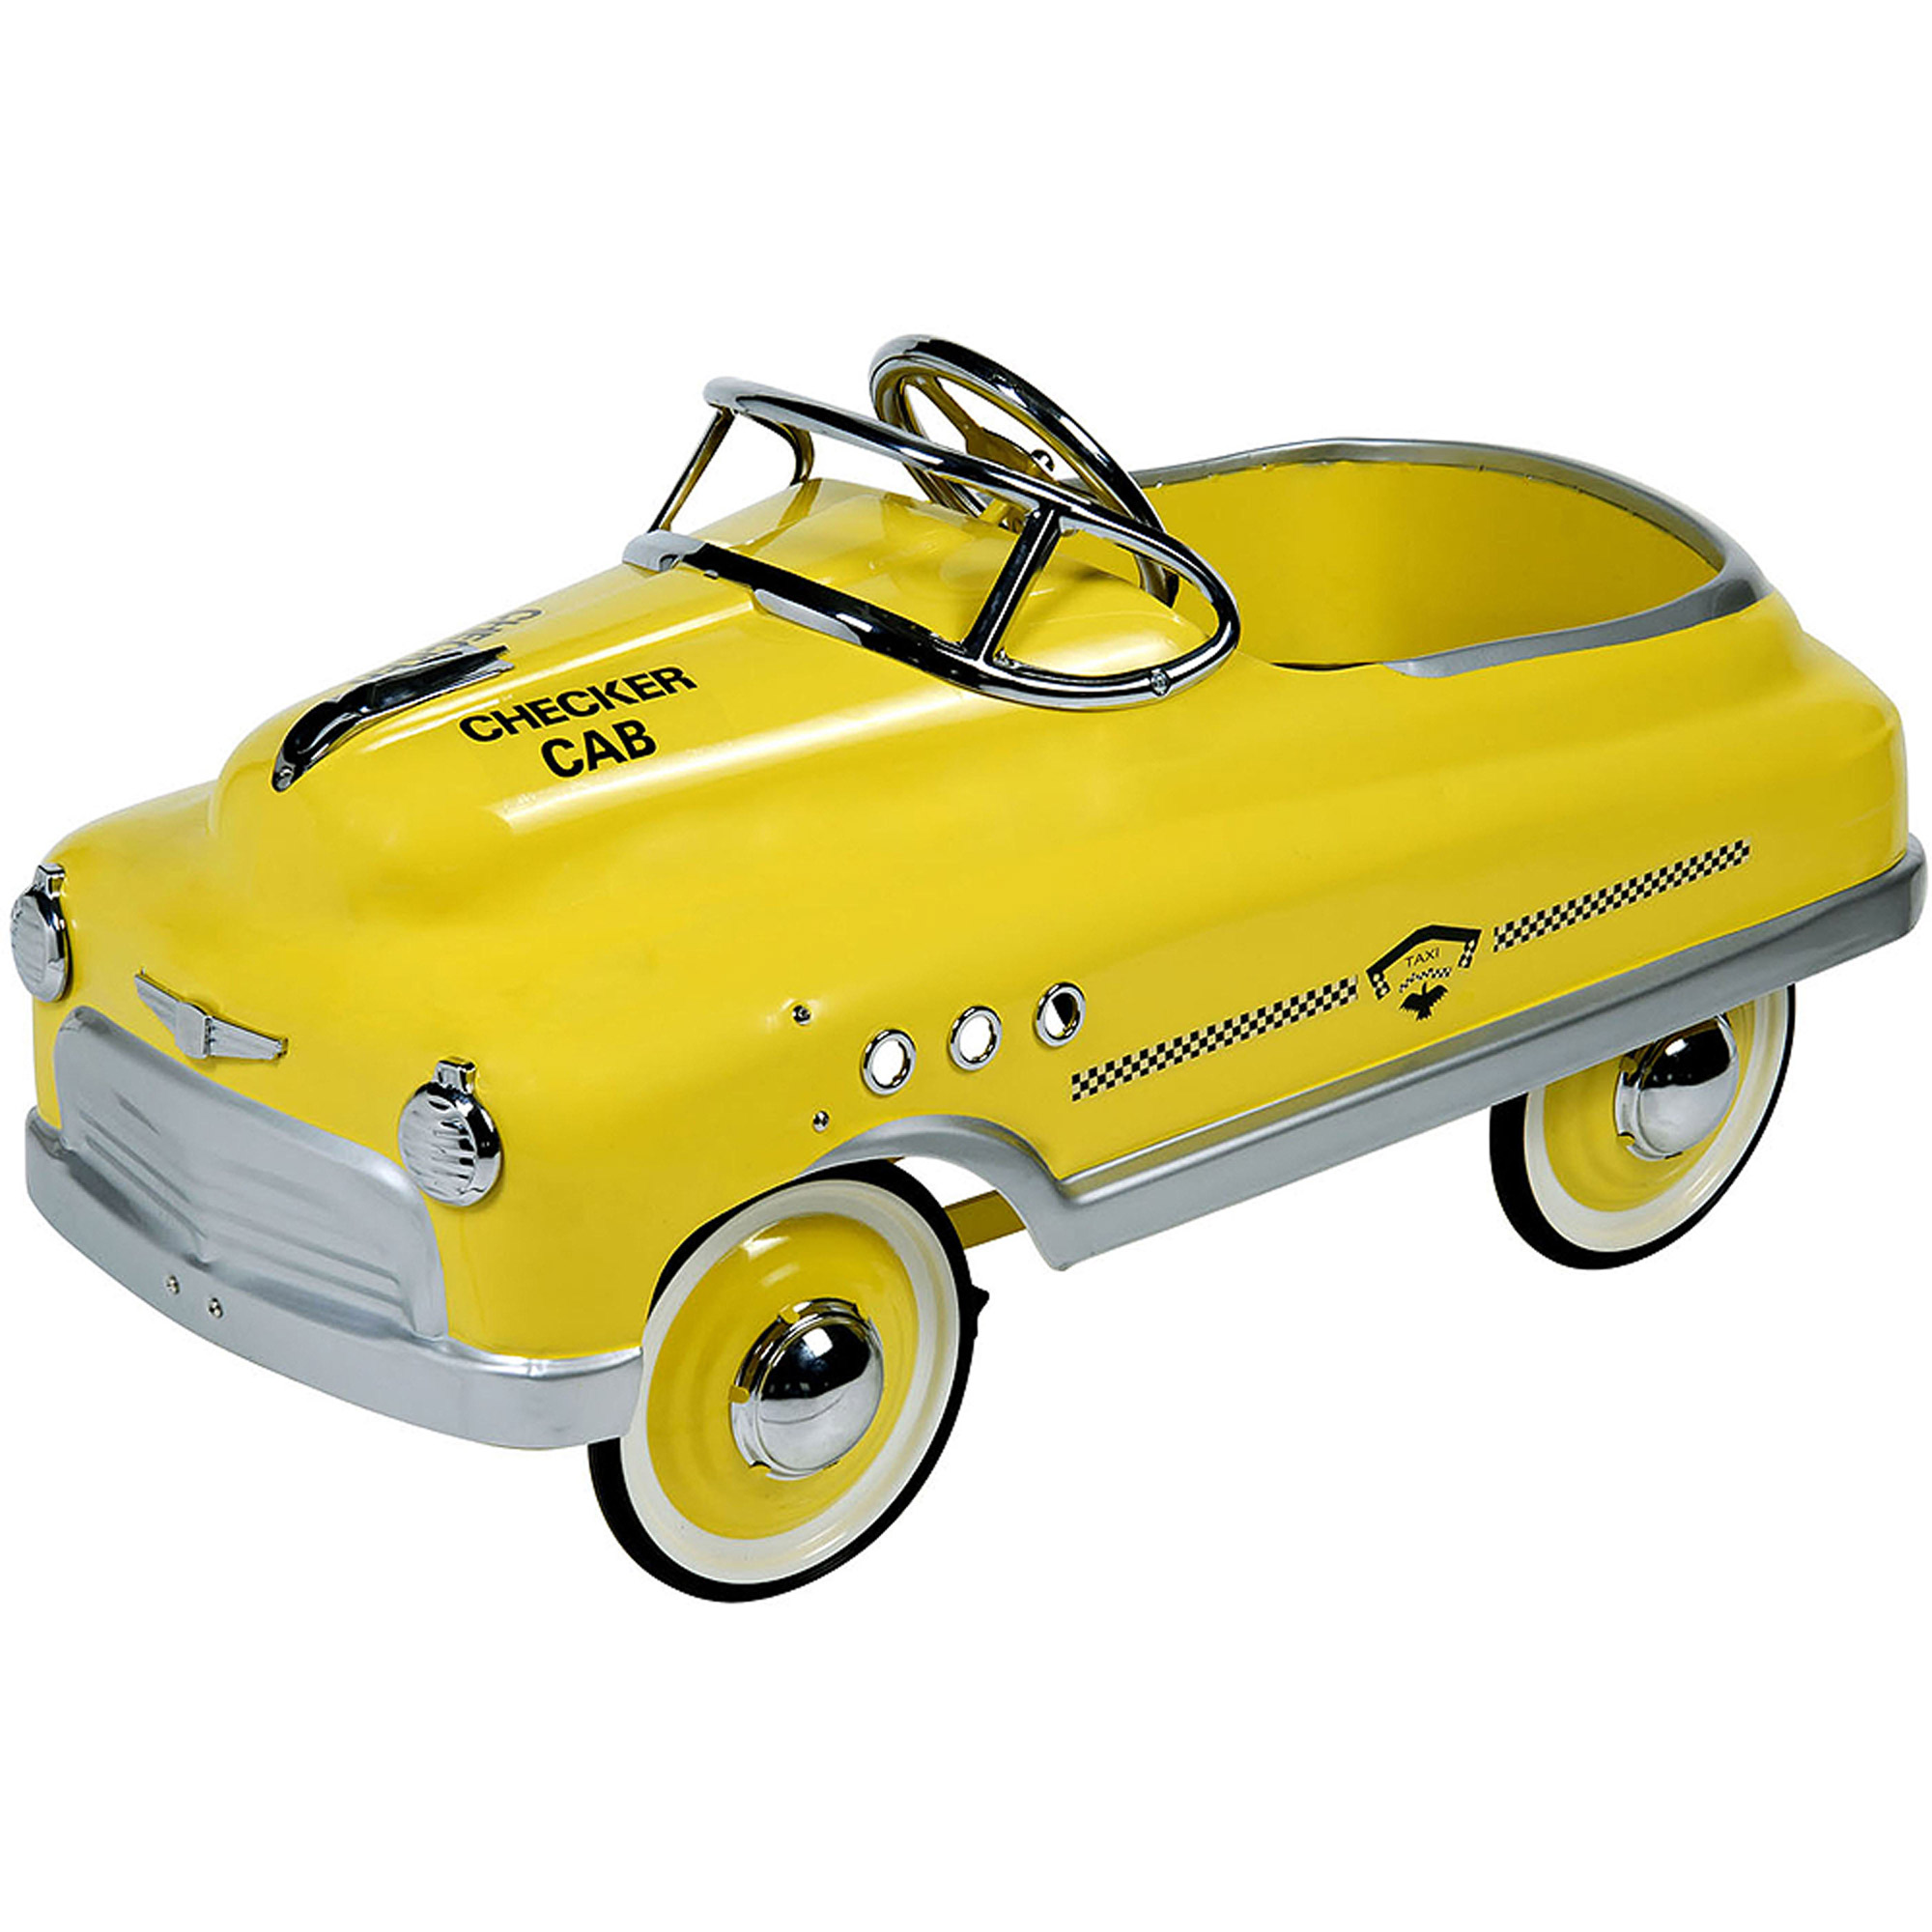 Taxi Comet Sedan Pedal Car Ride On by Dexton Kids